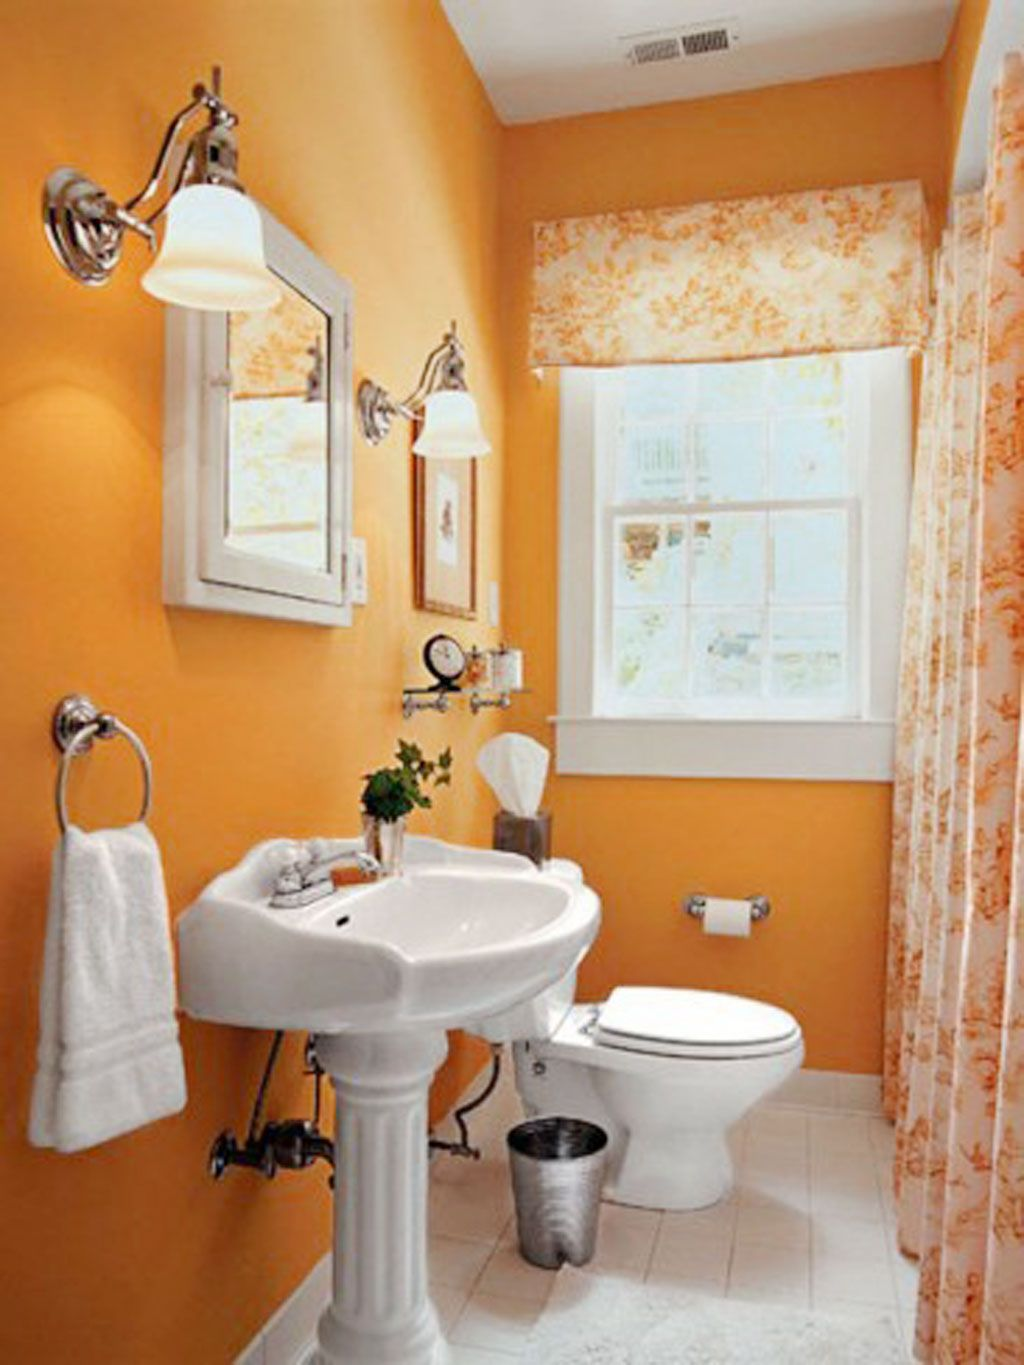 Small bathroom decorating ideas color - Find This Pin And More On Bathrooms Colour Pop 14 Small Bathroom Decorating Ideas